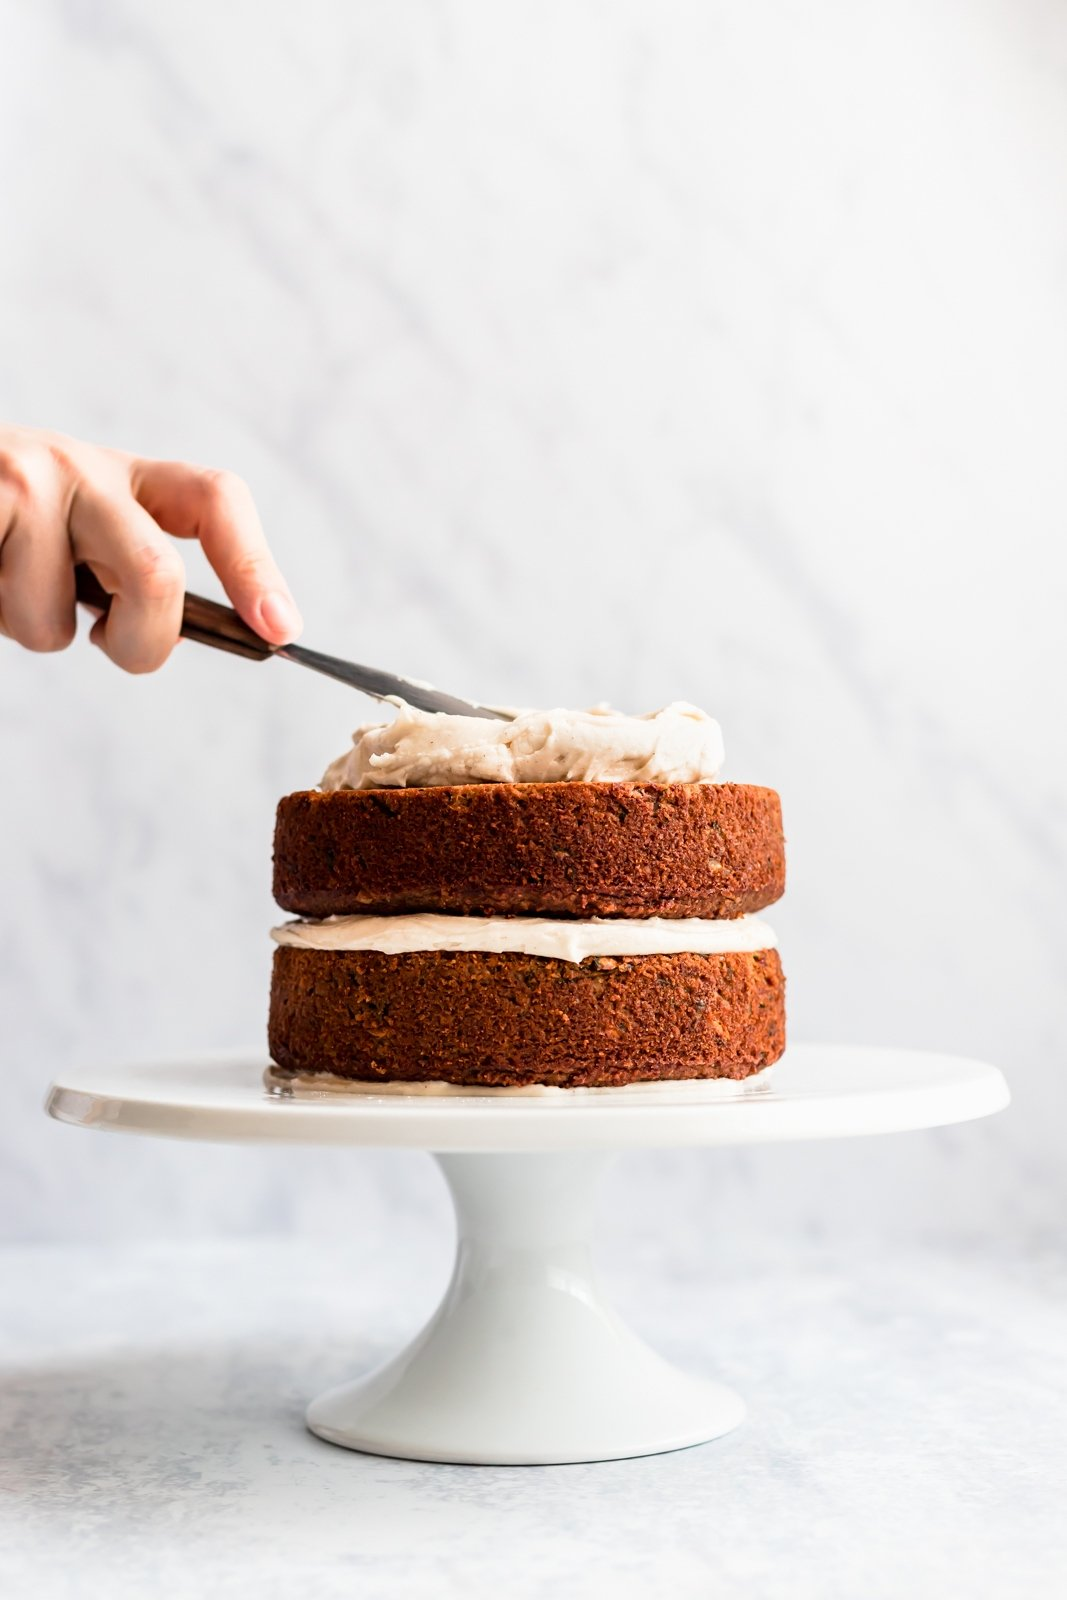 zucchini sweet potato cake on a cake stand with cream cheese frosting being put on